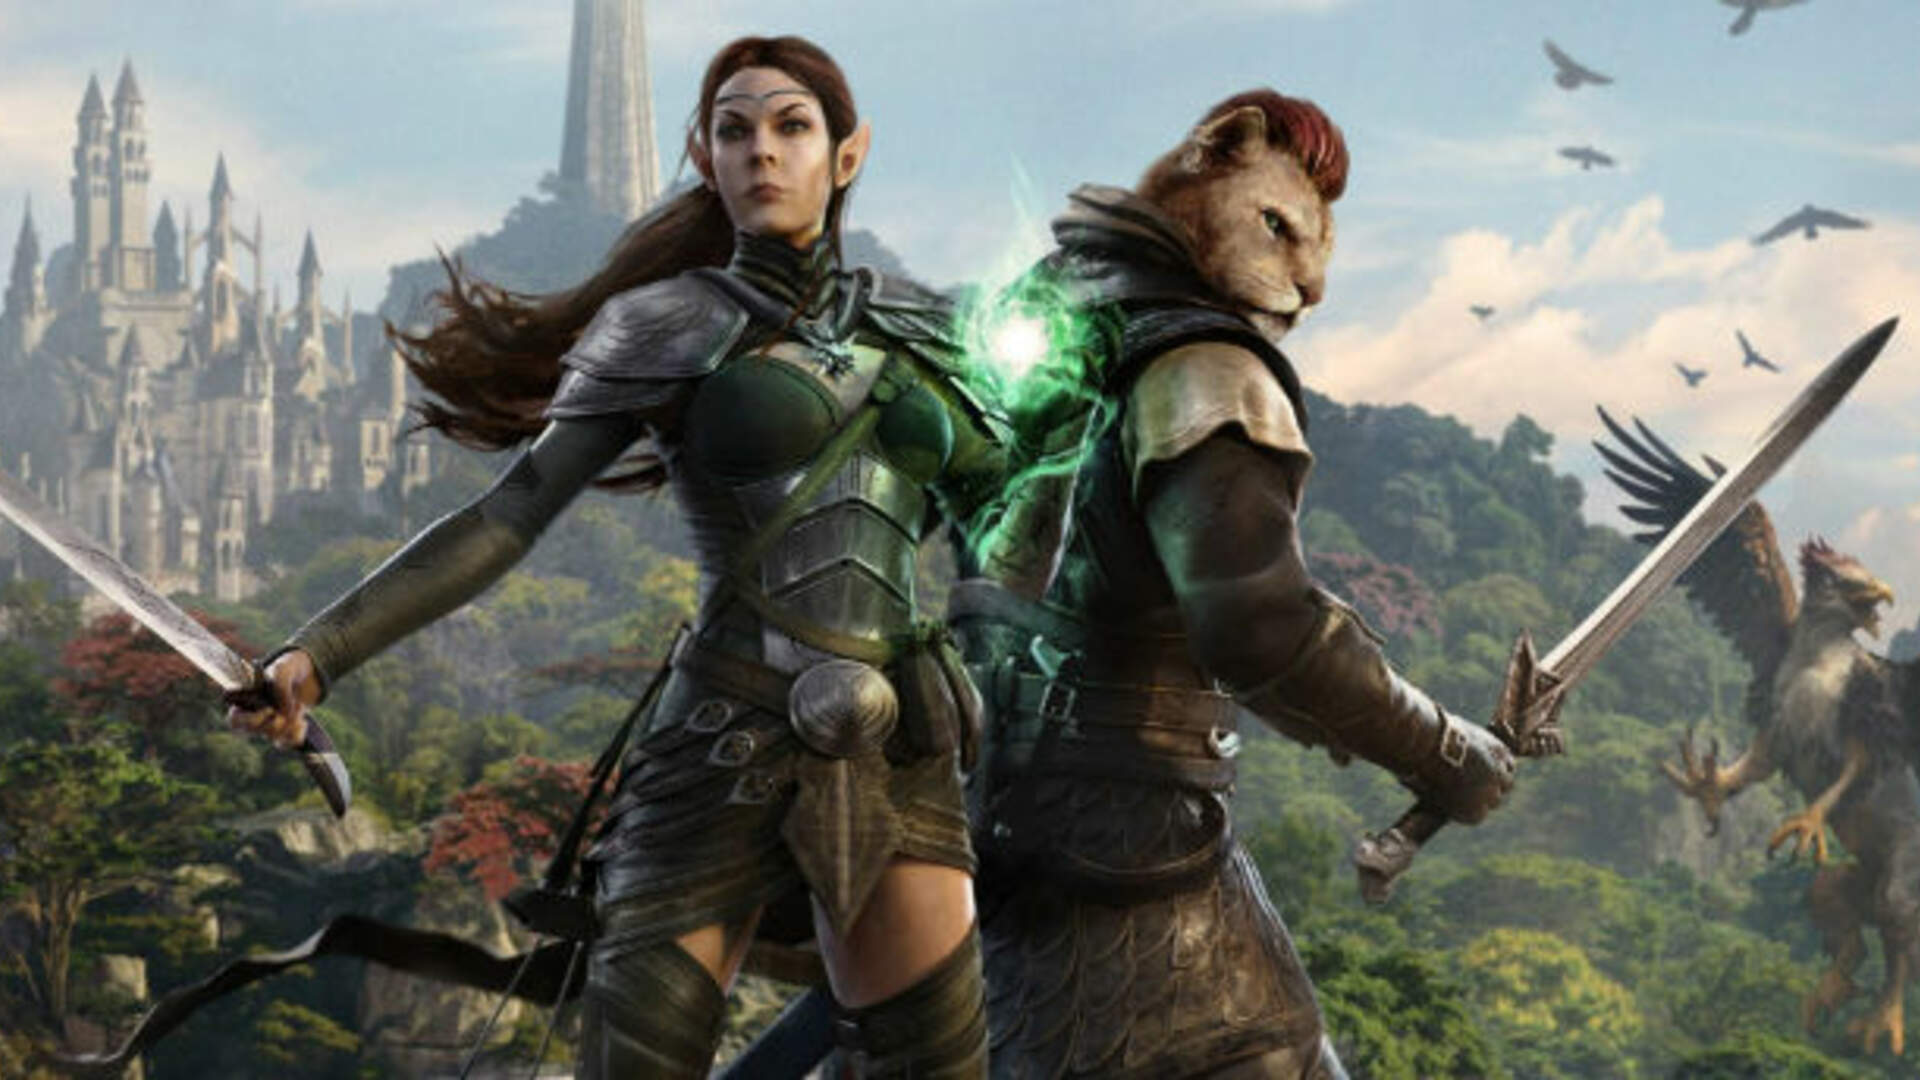 The Next Chapter of Elder Scrolls Online Takes You to Summerset Isle